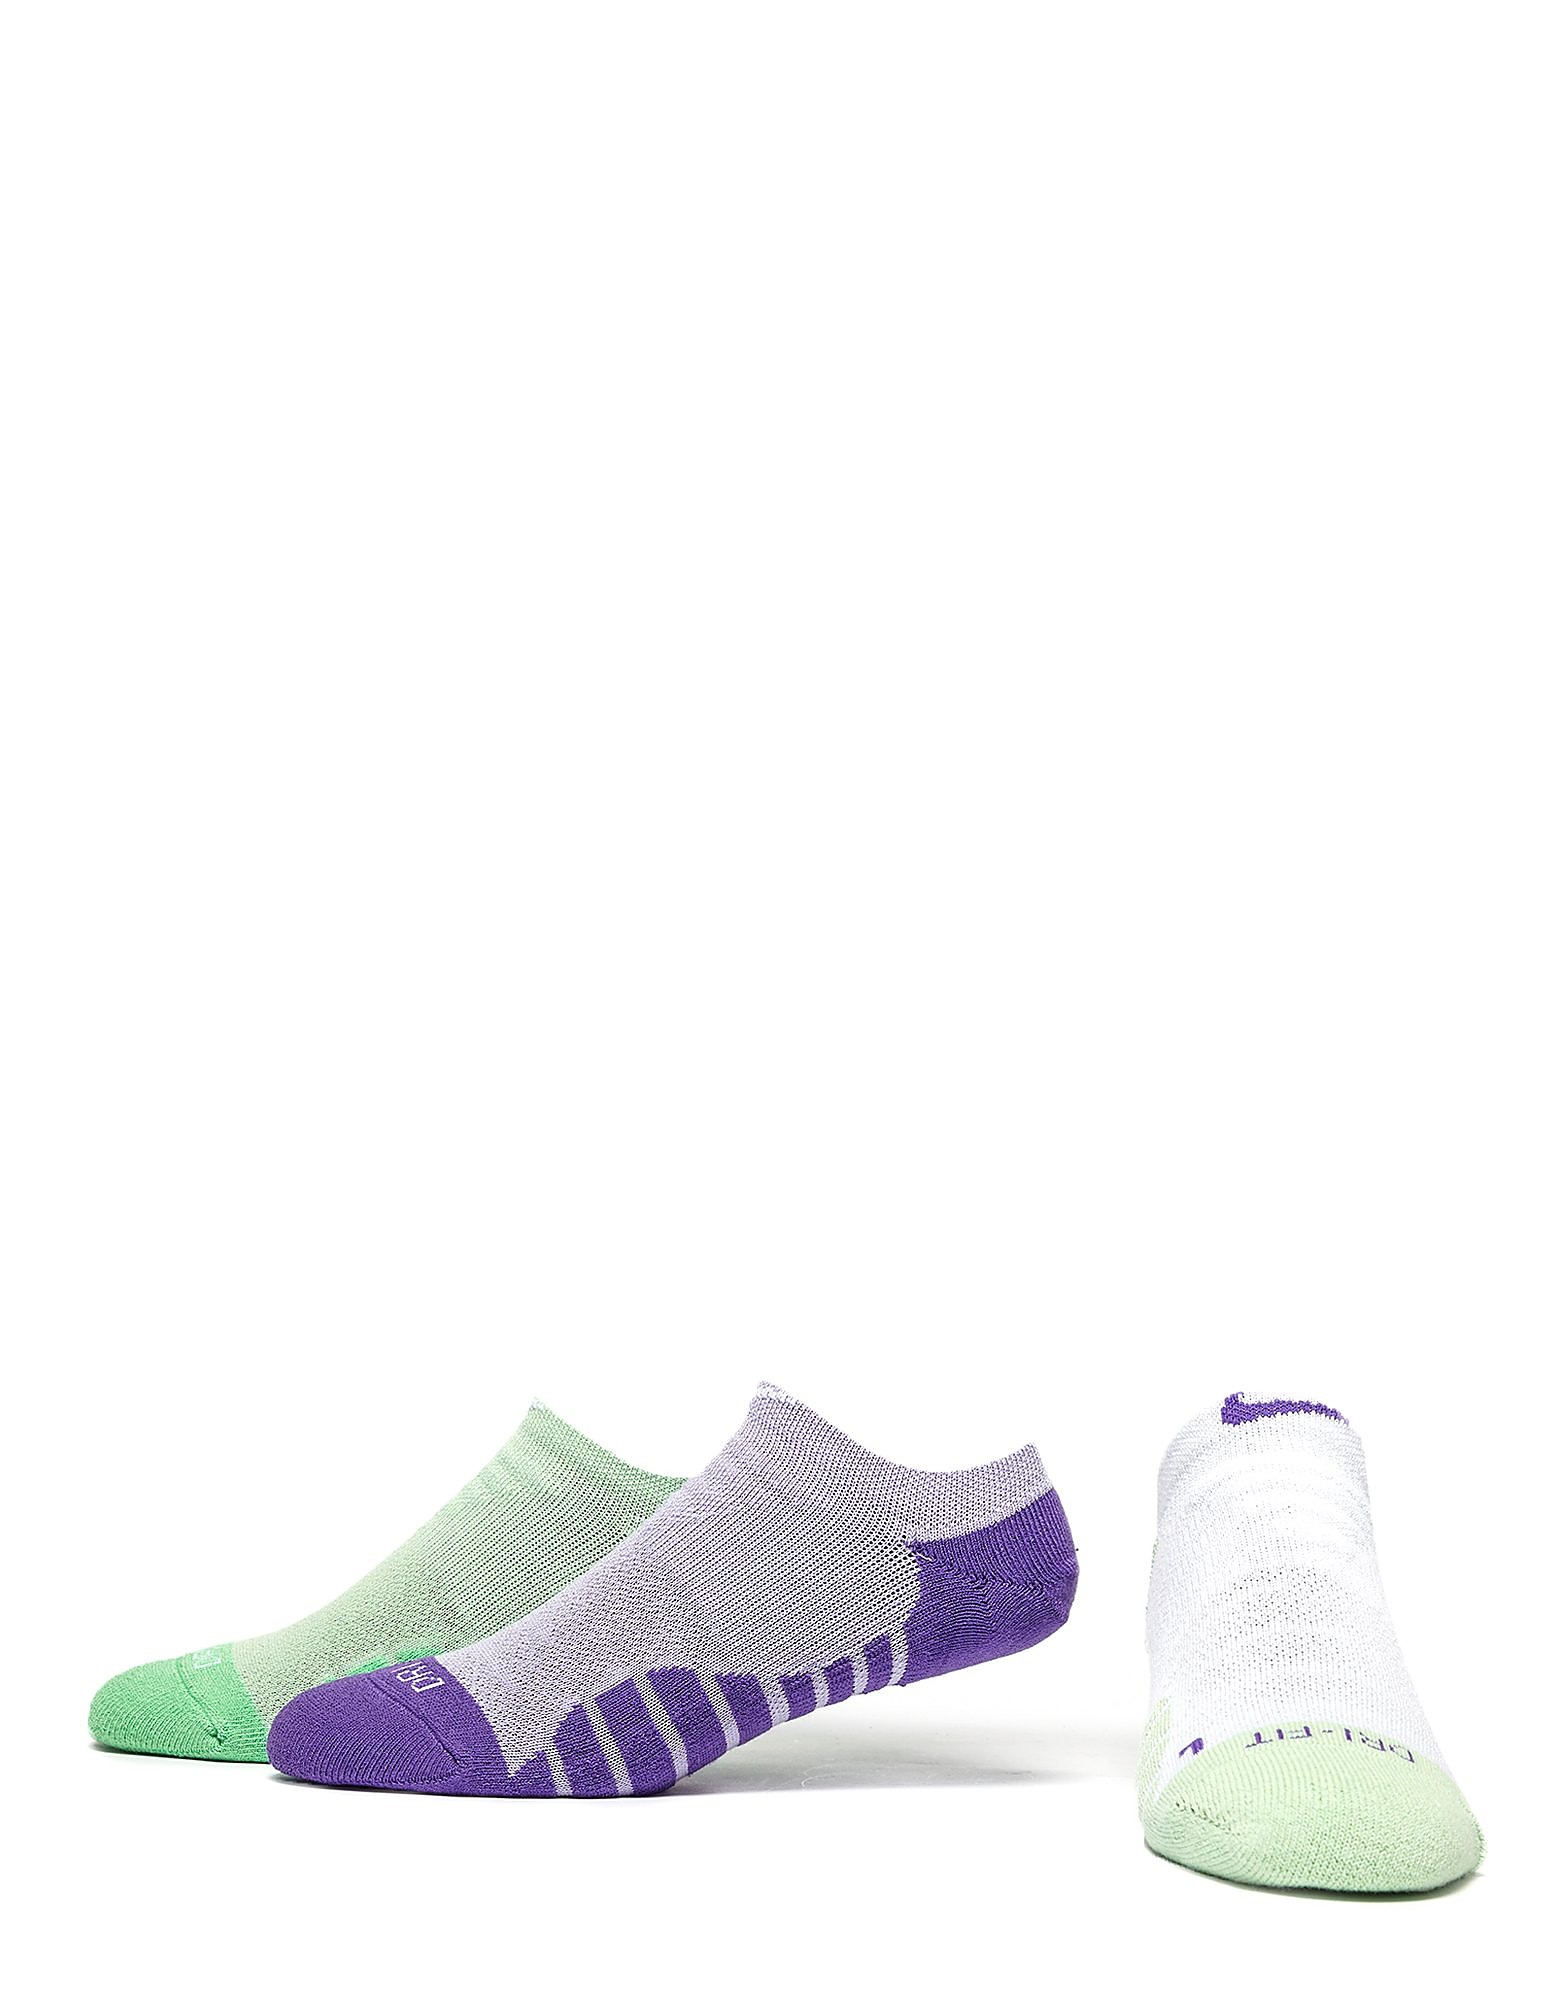 Nike Chaussettes 3 Pack No Show Running Femme